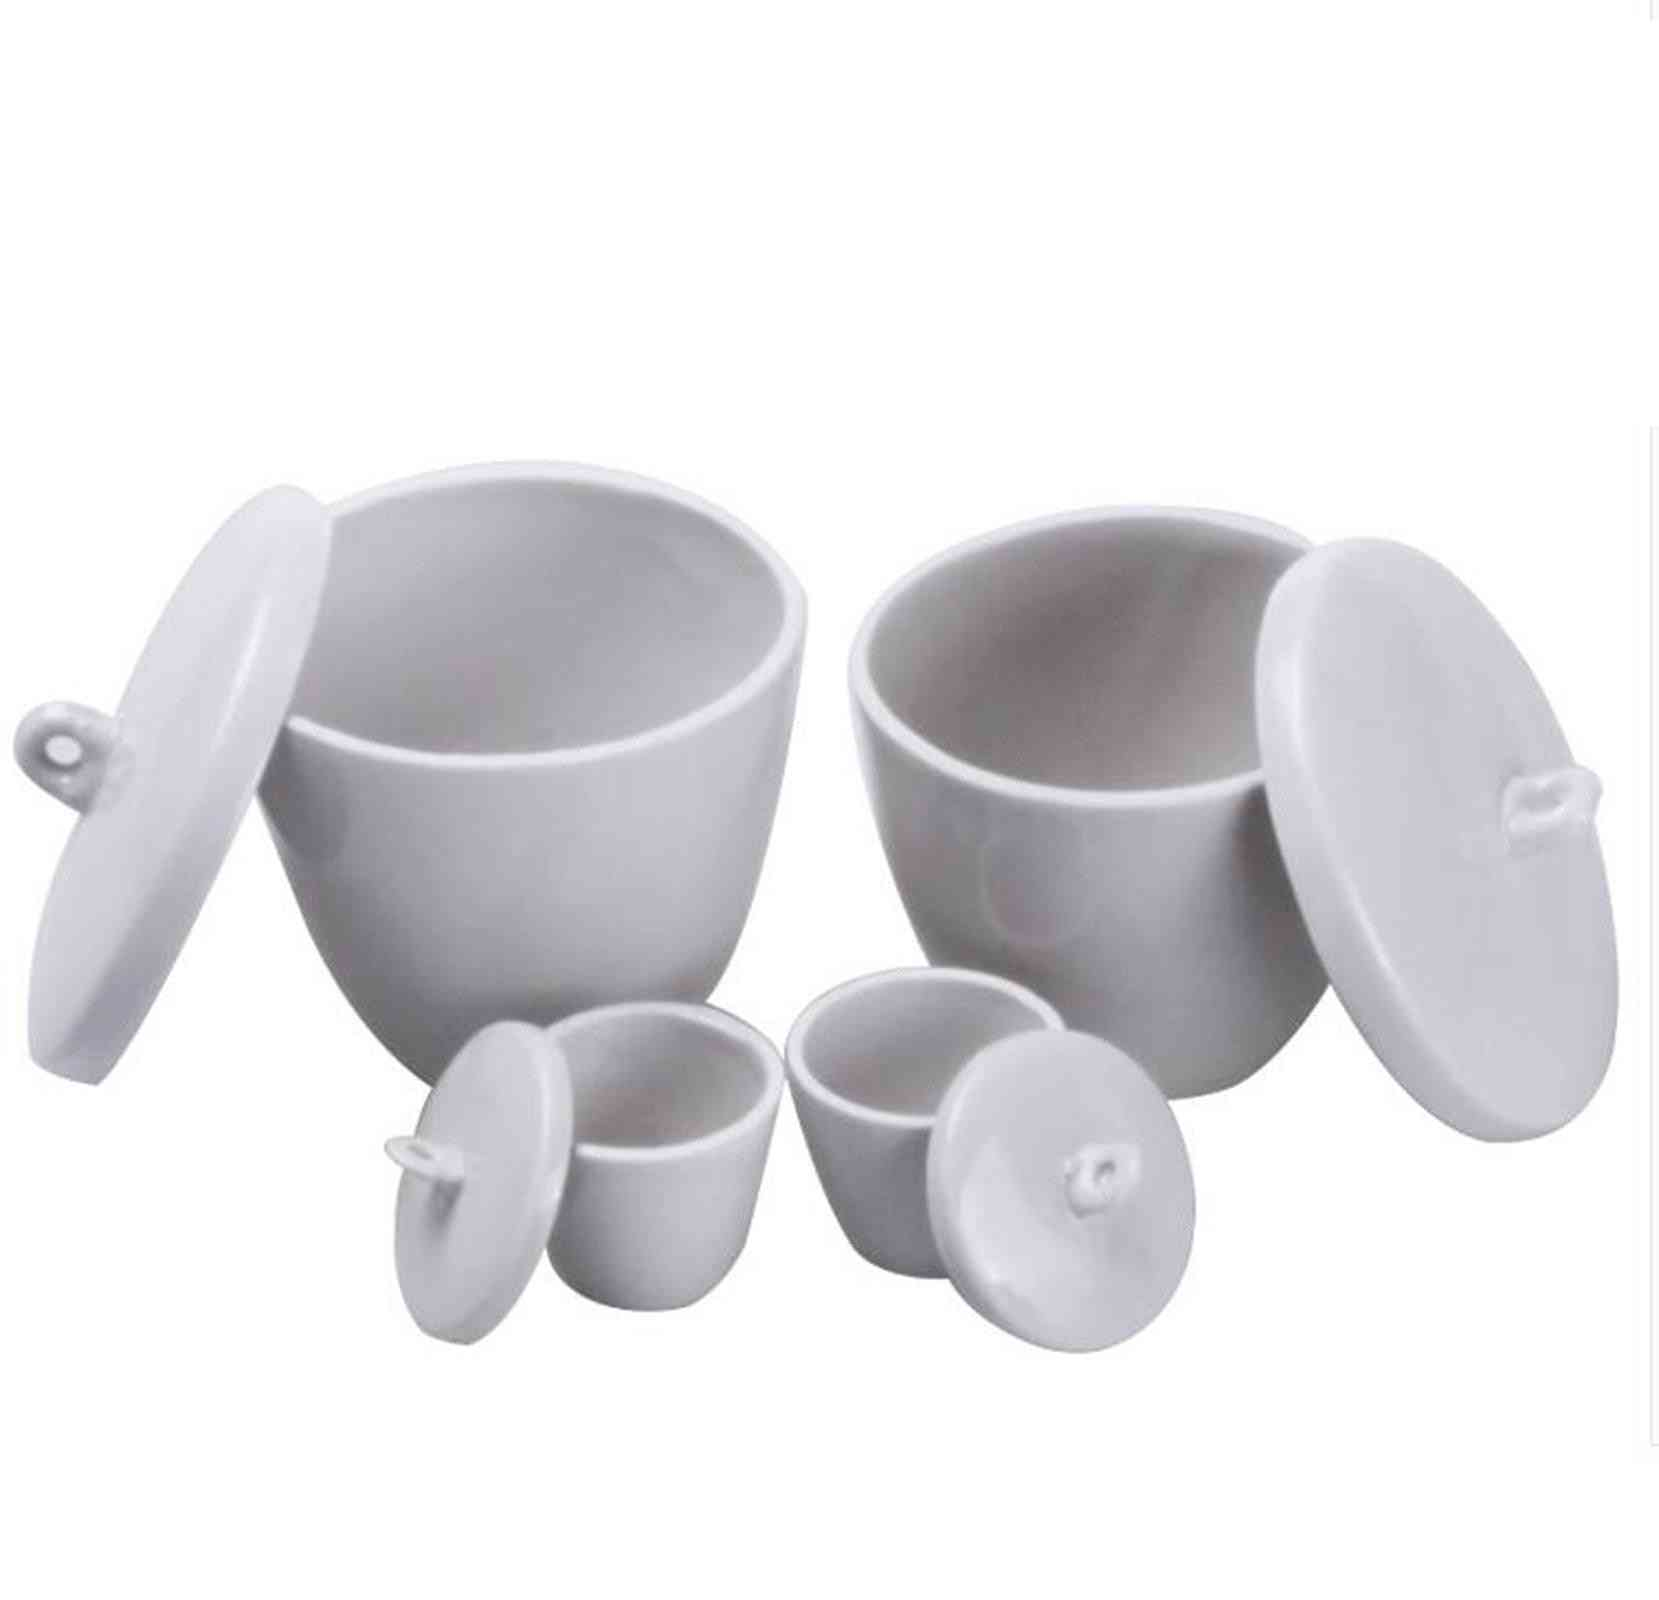 Ceramic Porcelain Crucible With Cover